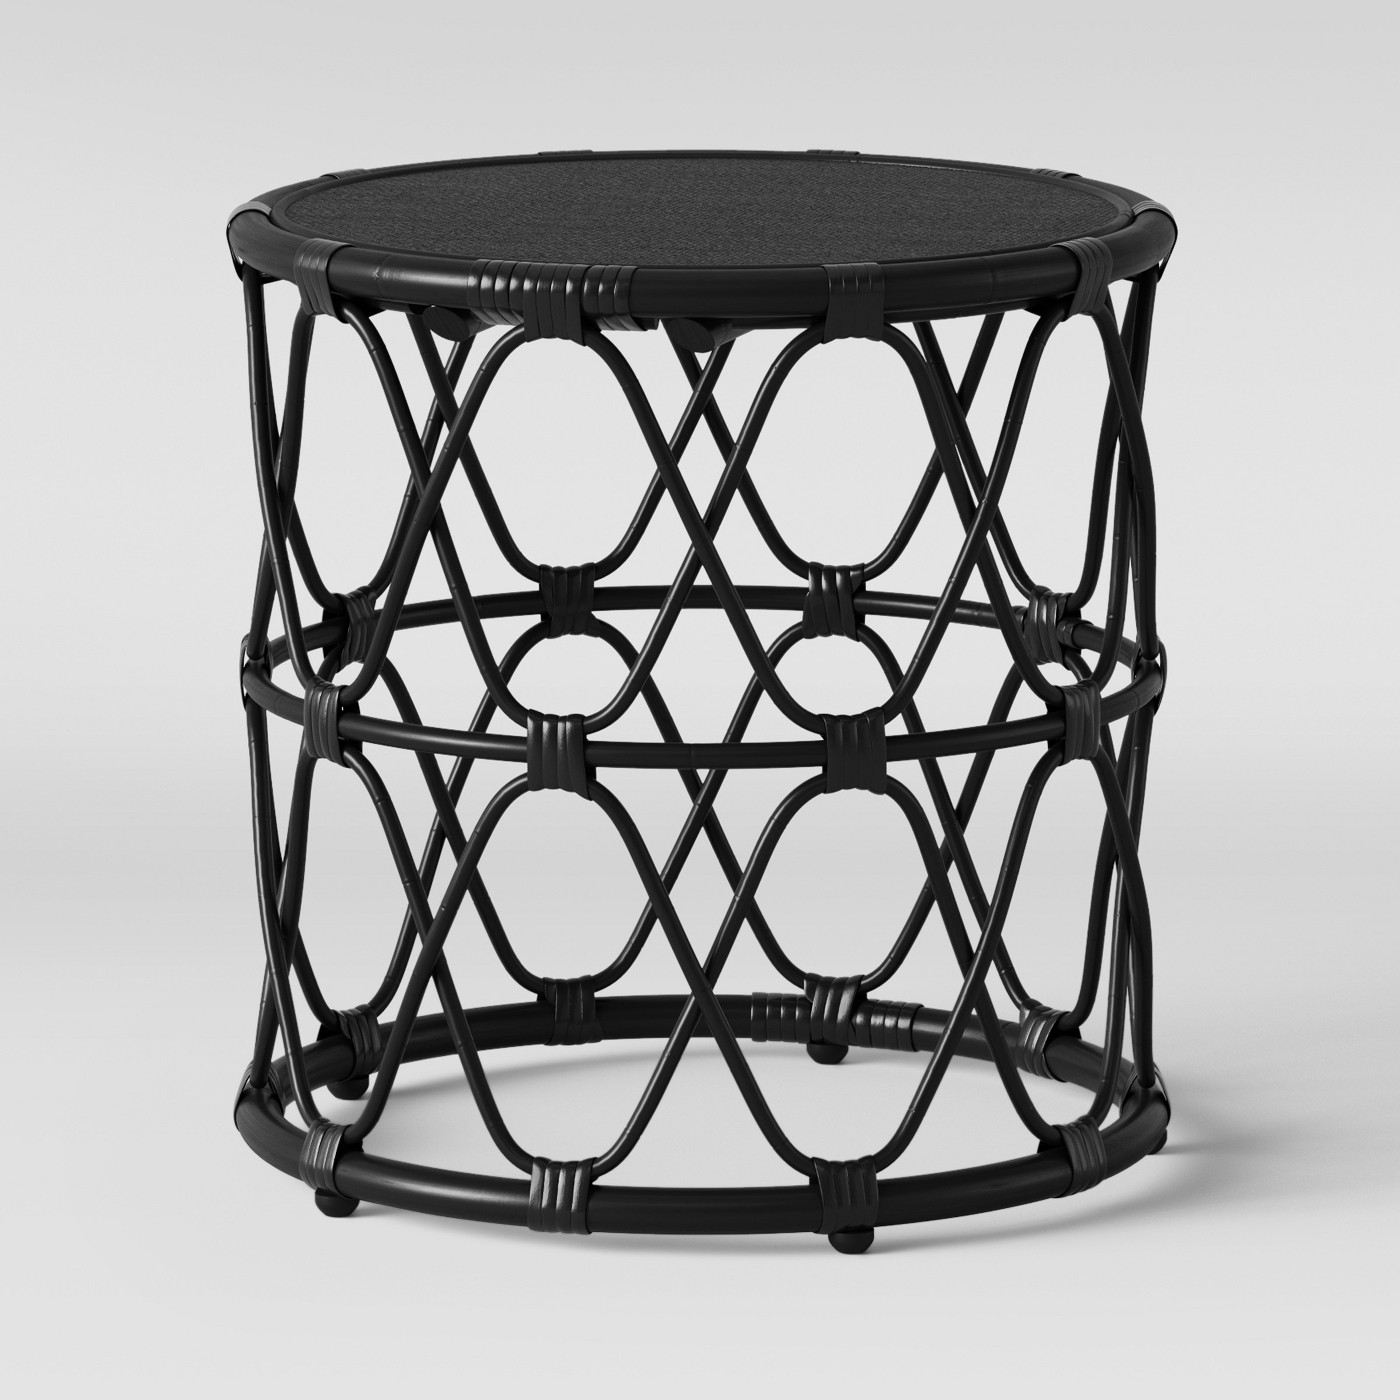 end tables target home that upgrade your living manila cylinder drum accent table brass room for less than accessories house decoration contemporary trestle dining patio furniture